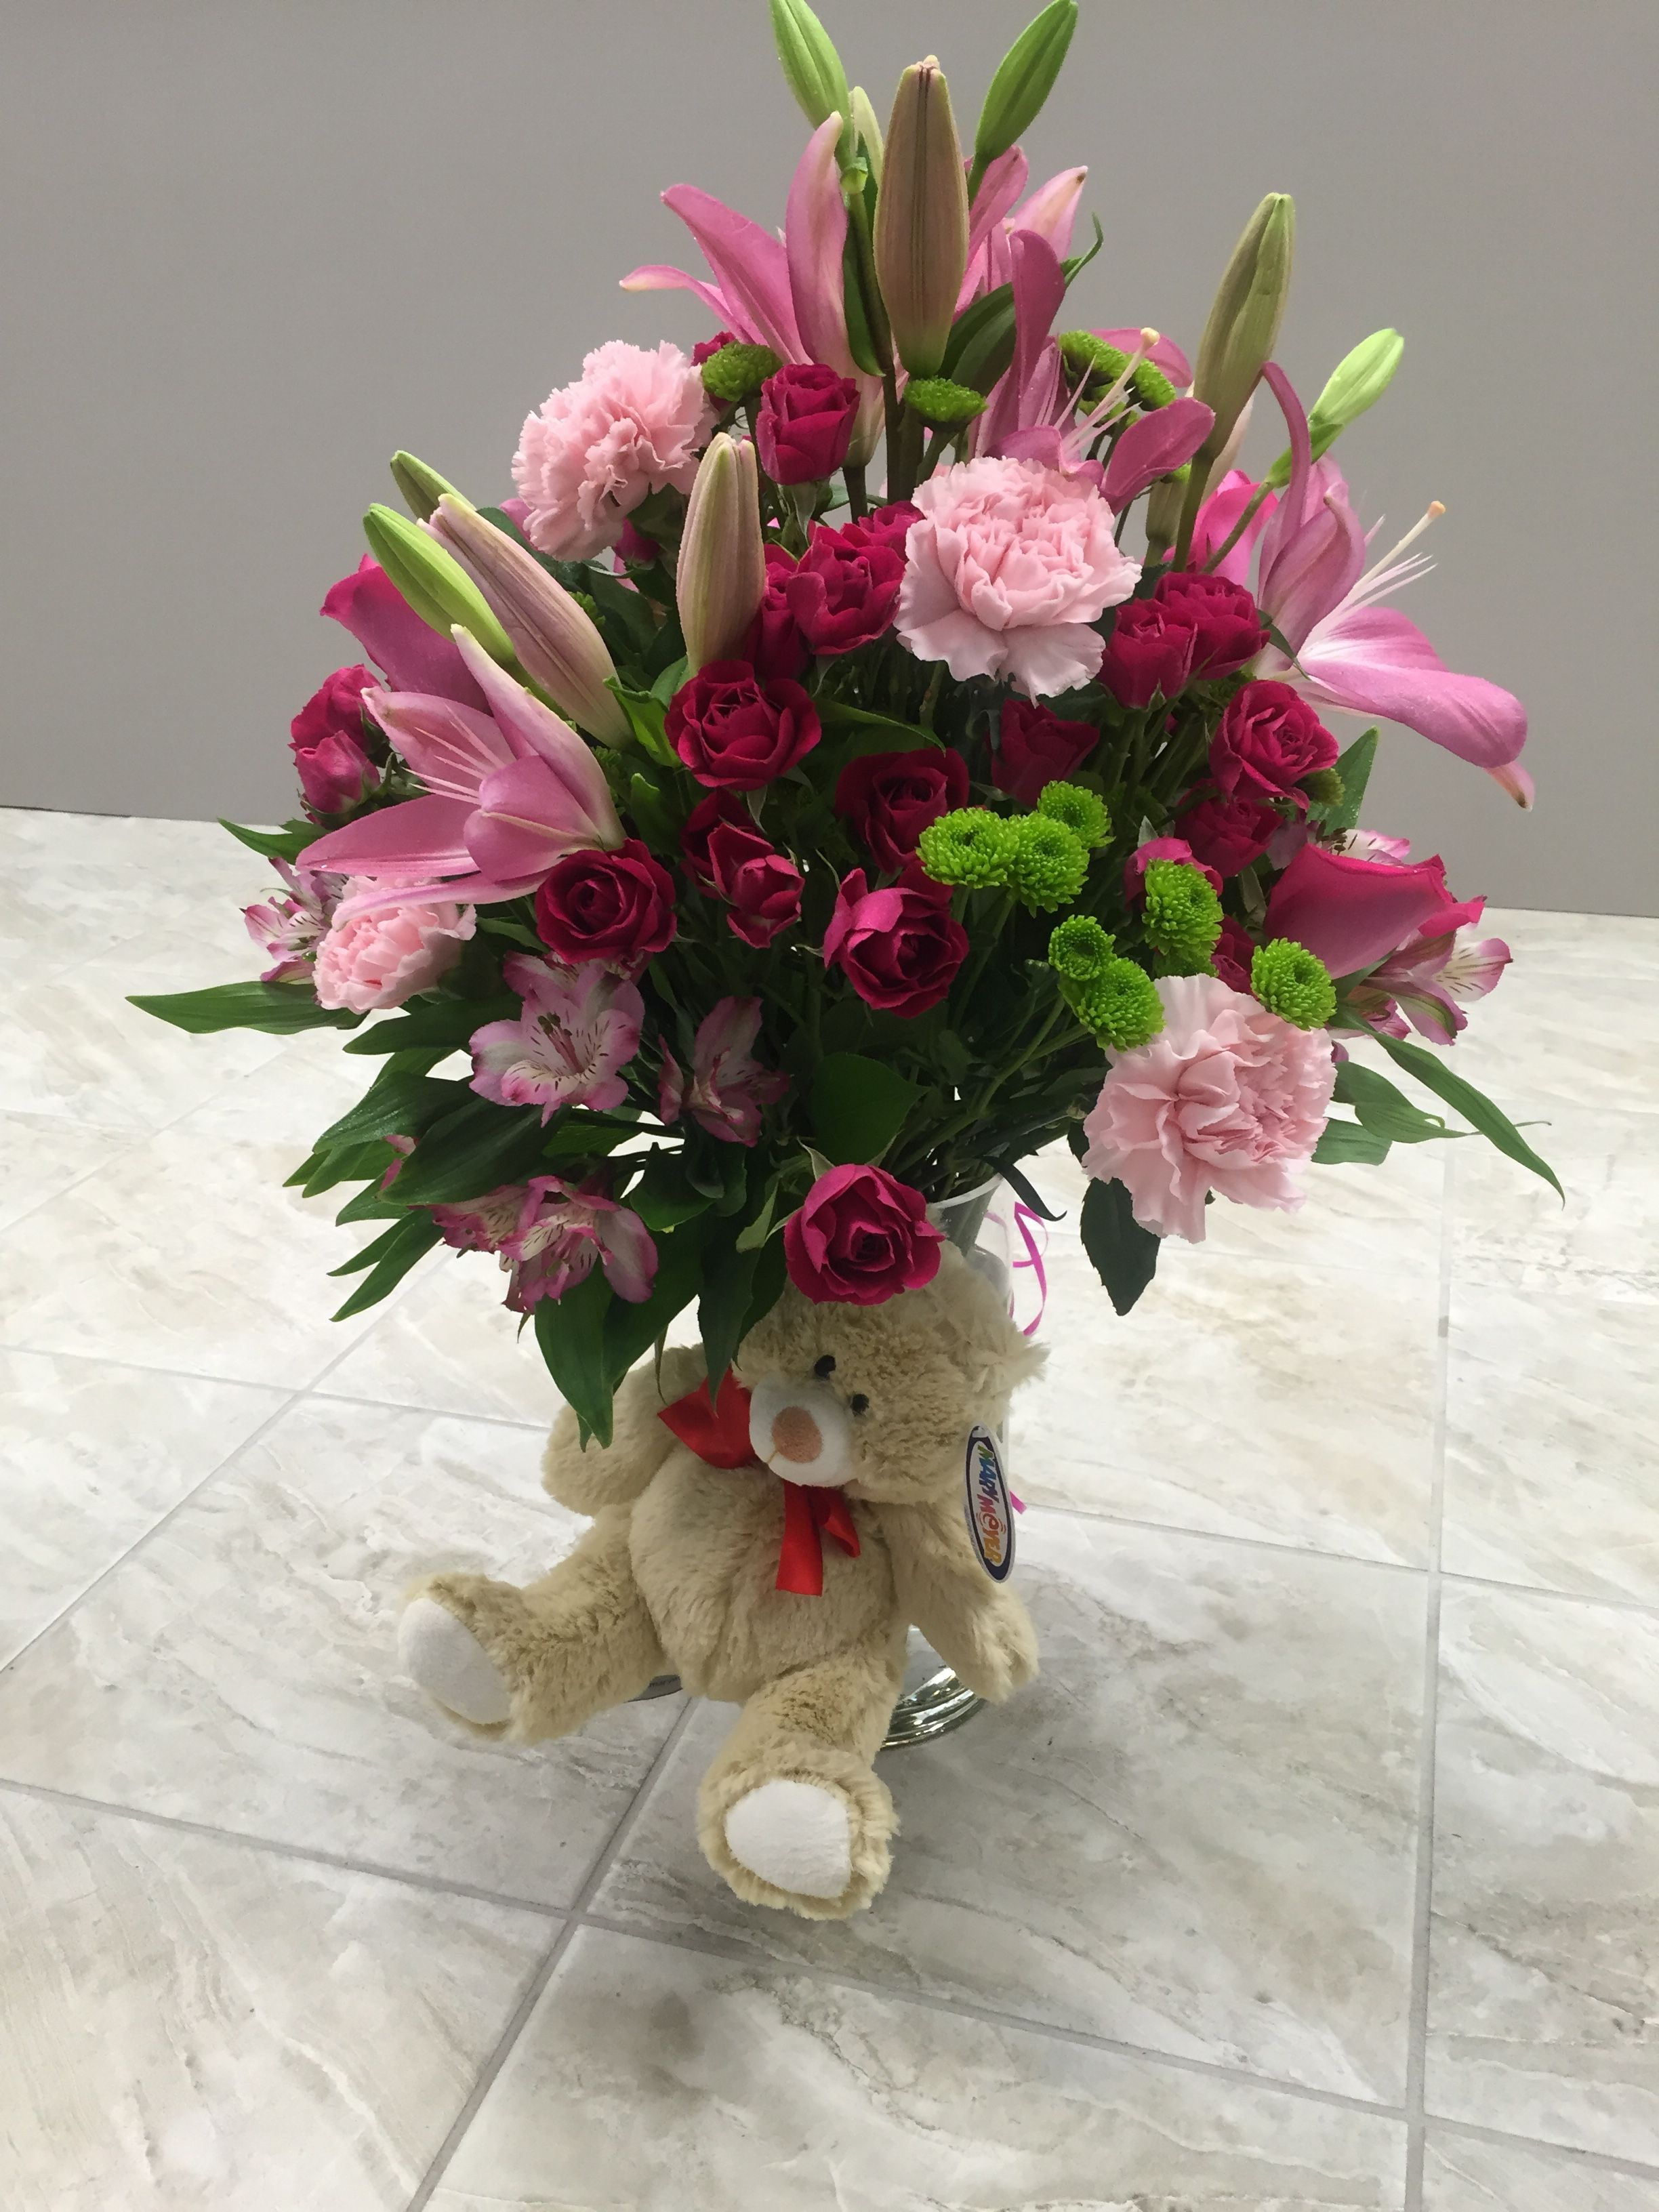 Birthday Flowers And Teddy Bear Present Flower Power Flowers For